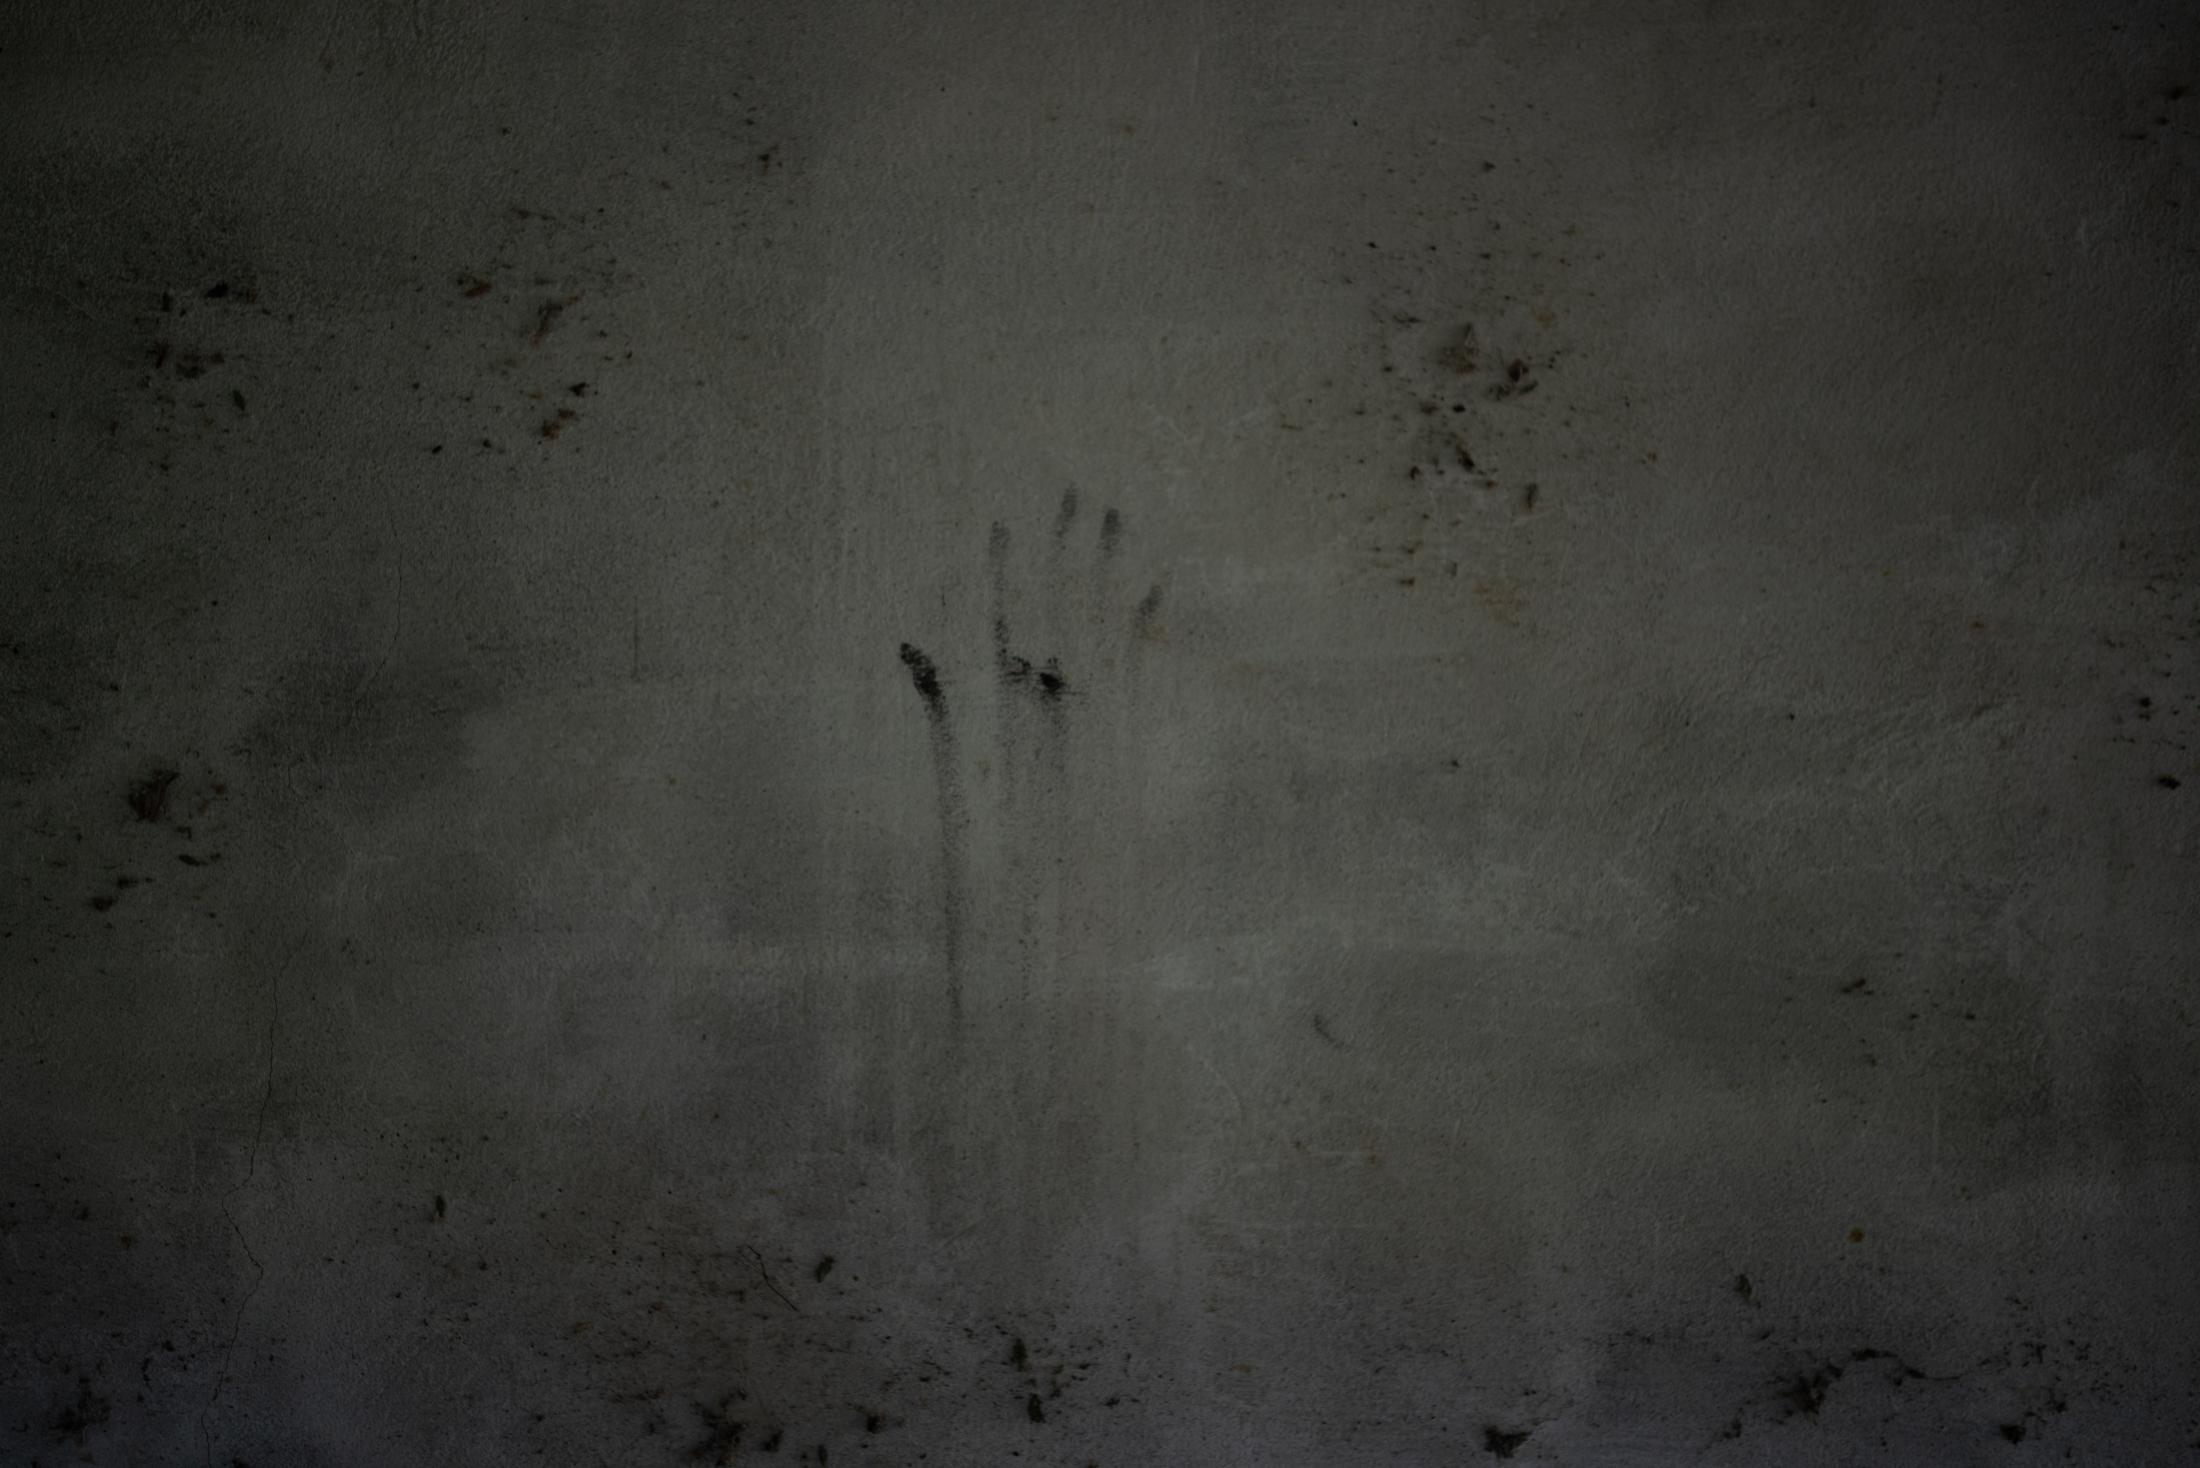 """February 20, 2020. Tihuatlán, Veracruz, Mexico. The handprint made of ashes inside the house located in the ranch """"La Gallera"""" where human remains have been located during the fifth National Missing Persons Search Brigade."""